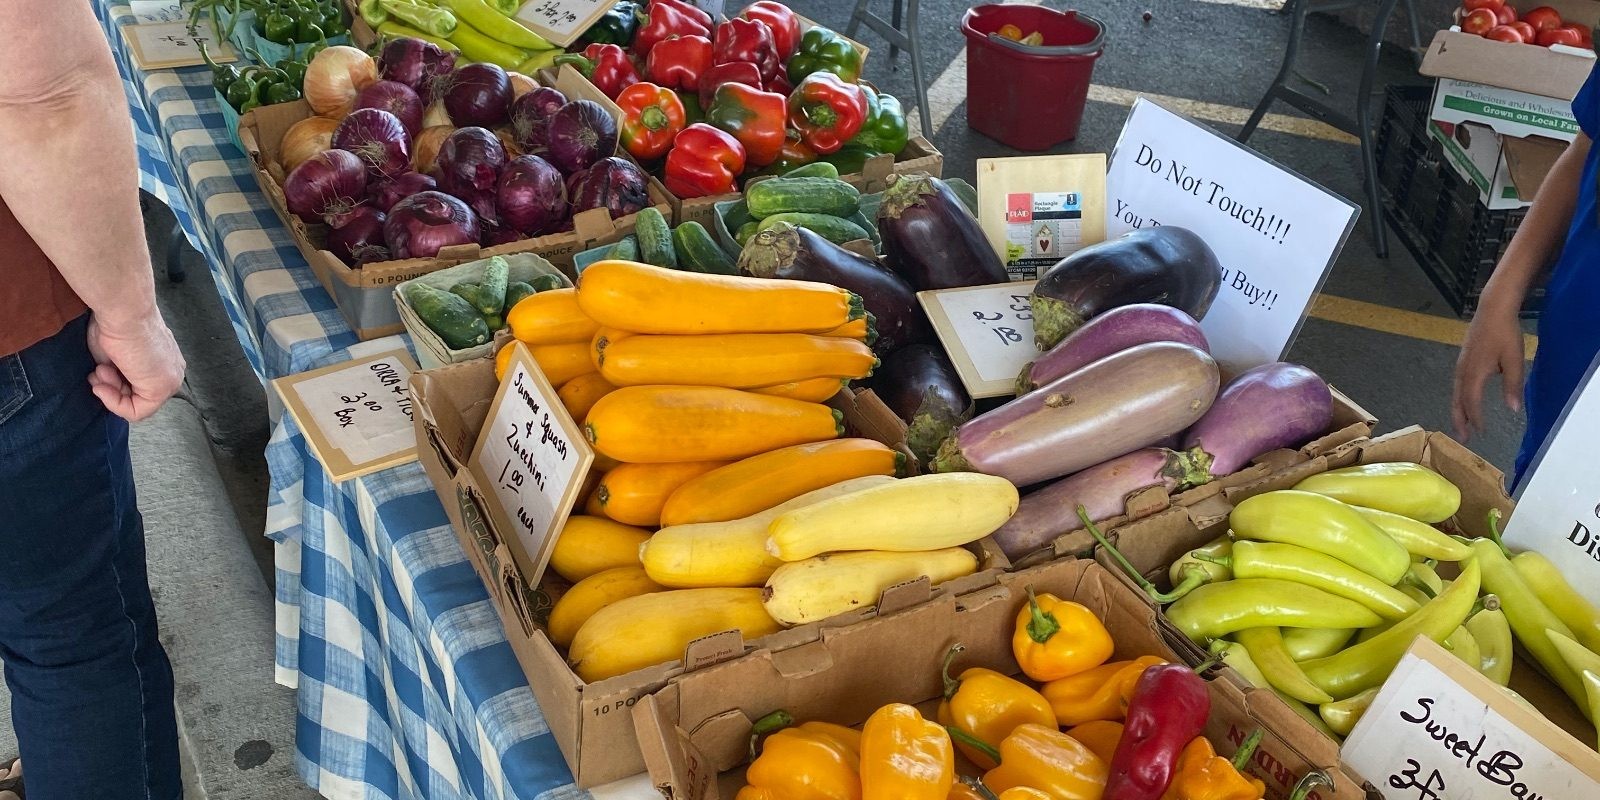 Produce on display at the Uptown Farmers Market in Independence, MO